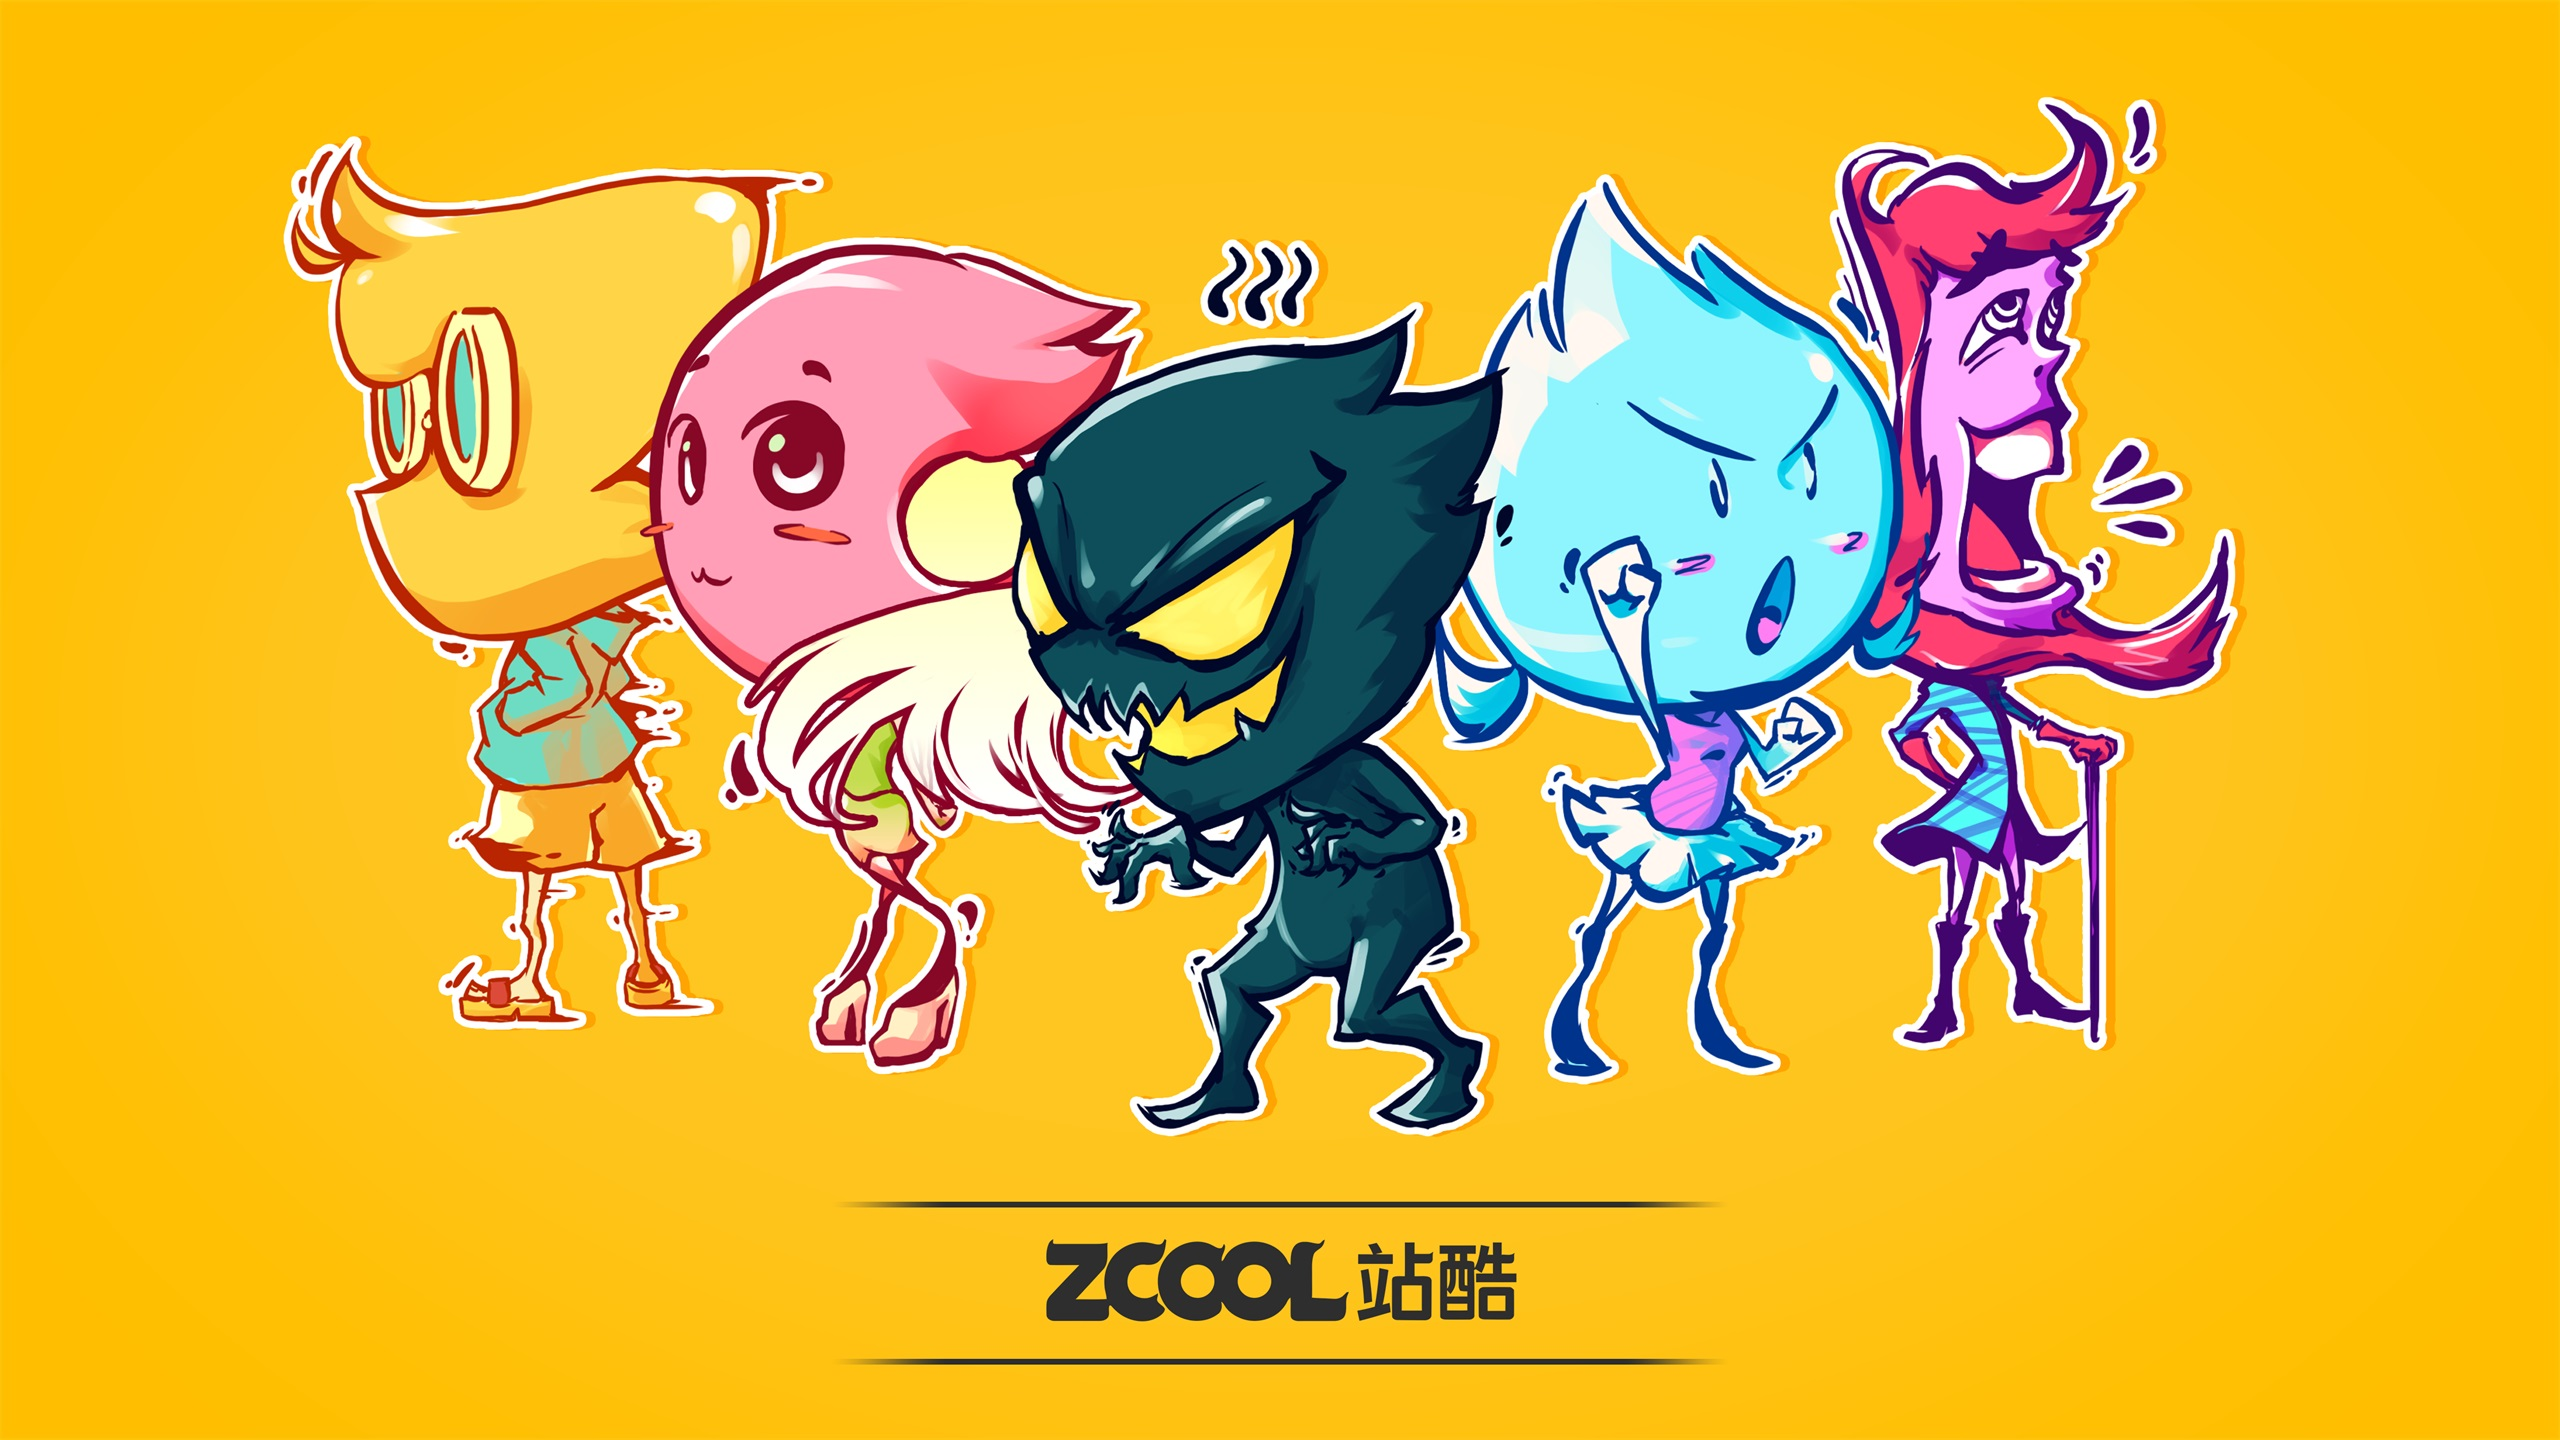 [ ZCOOL TEAM -Z- ] Wallpaper02 by jian894123078